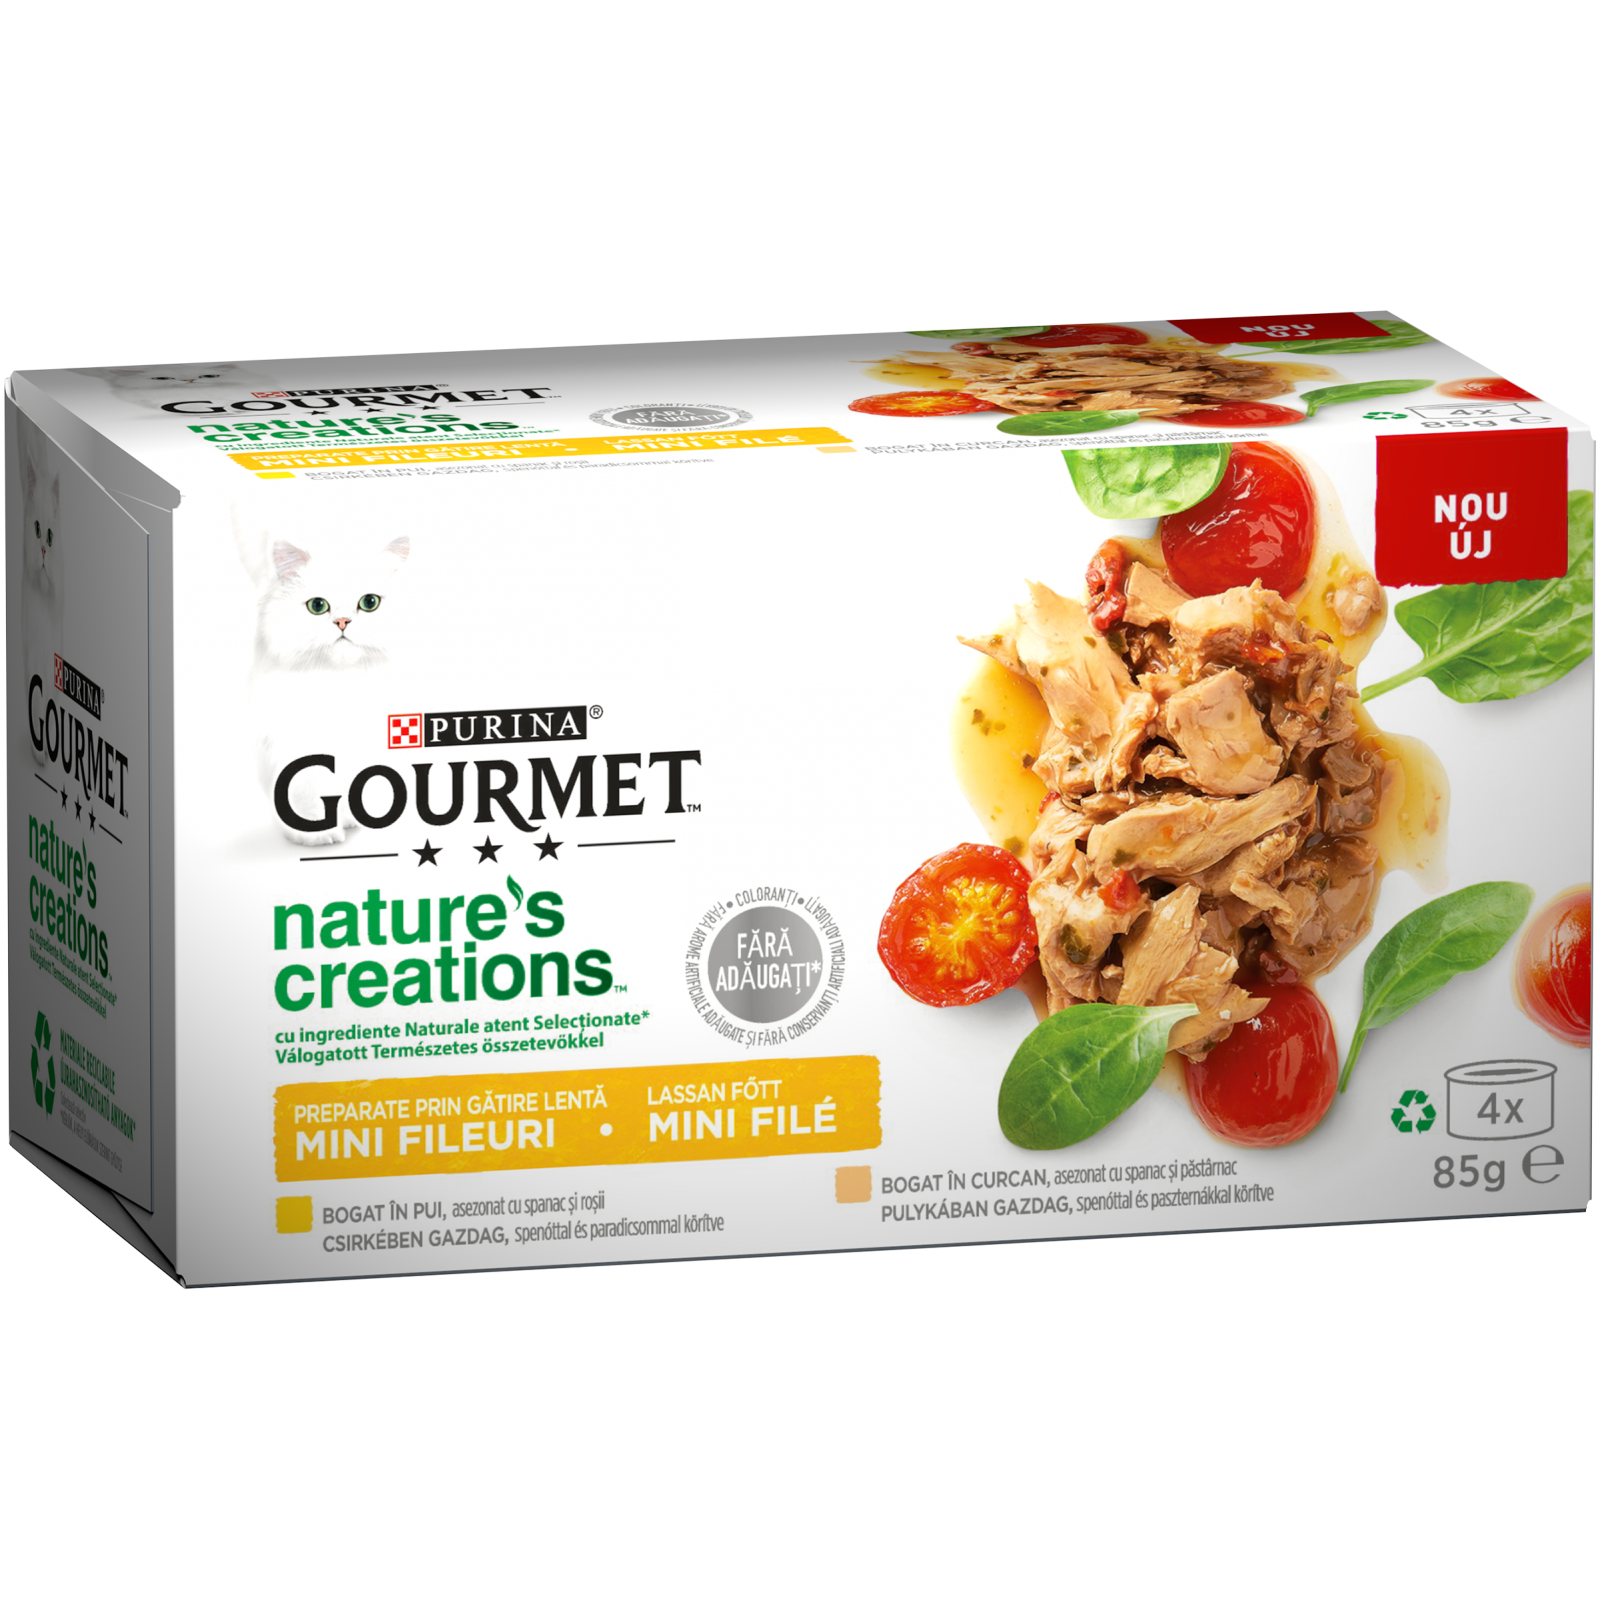 Gourmet Nature's Creations File Multipack, Pui si Curcan, 4 x 85 g imagine